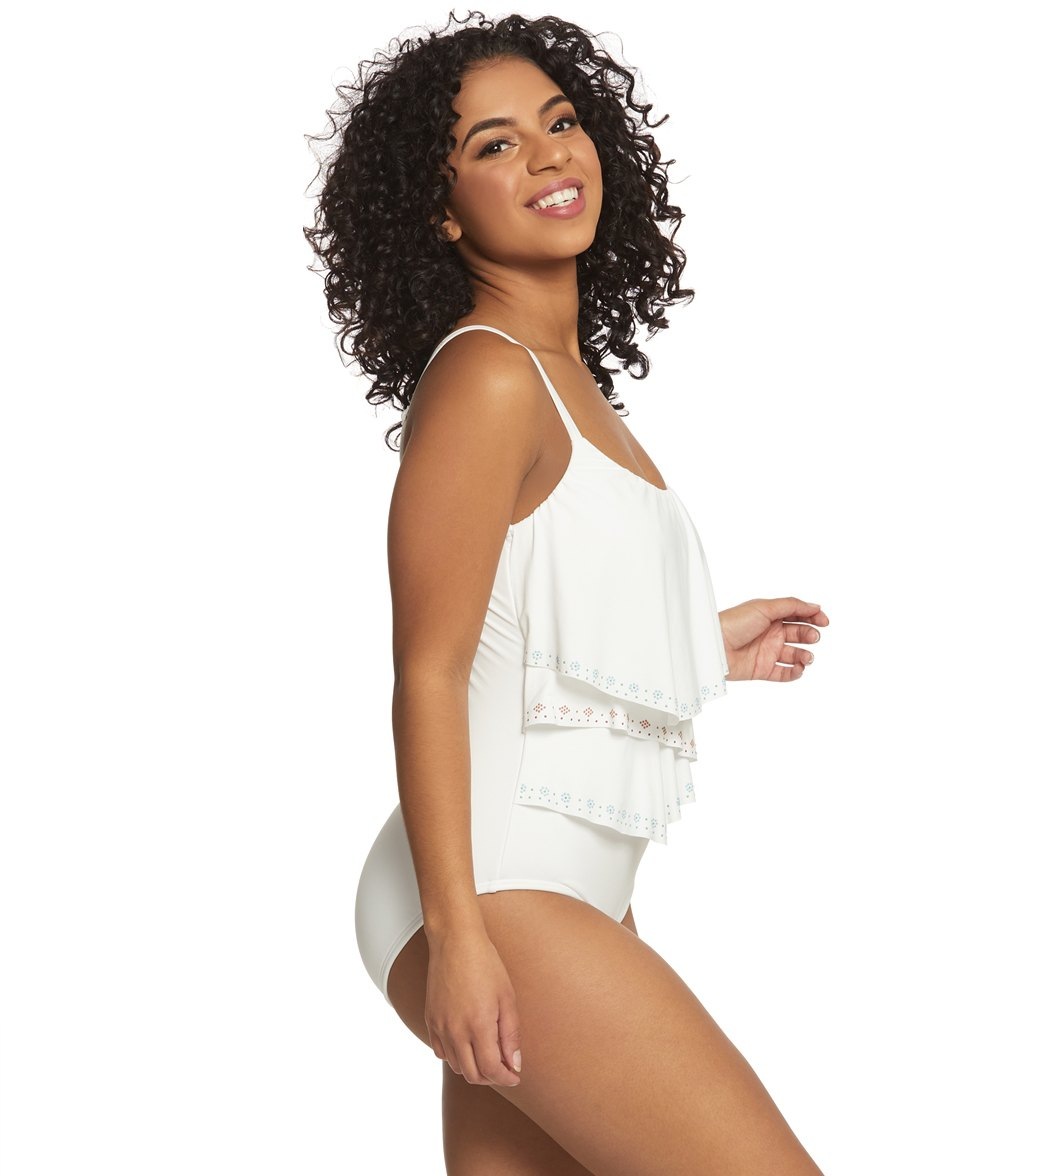 d57b457b10 Coco Reef Hot Spots Aura Ruffle One Piece Swimsuit (C-DD Cup) at ...